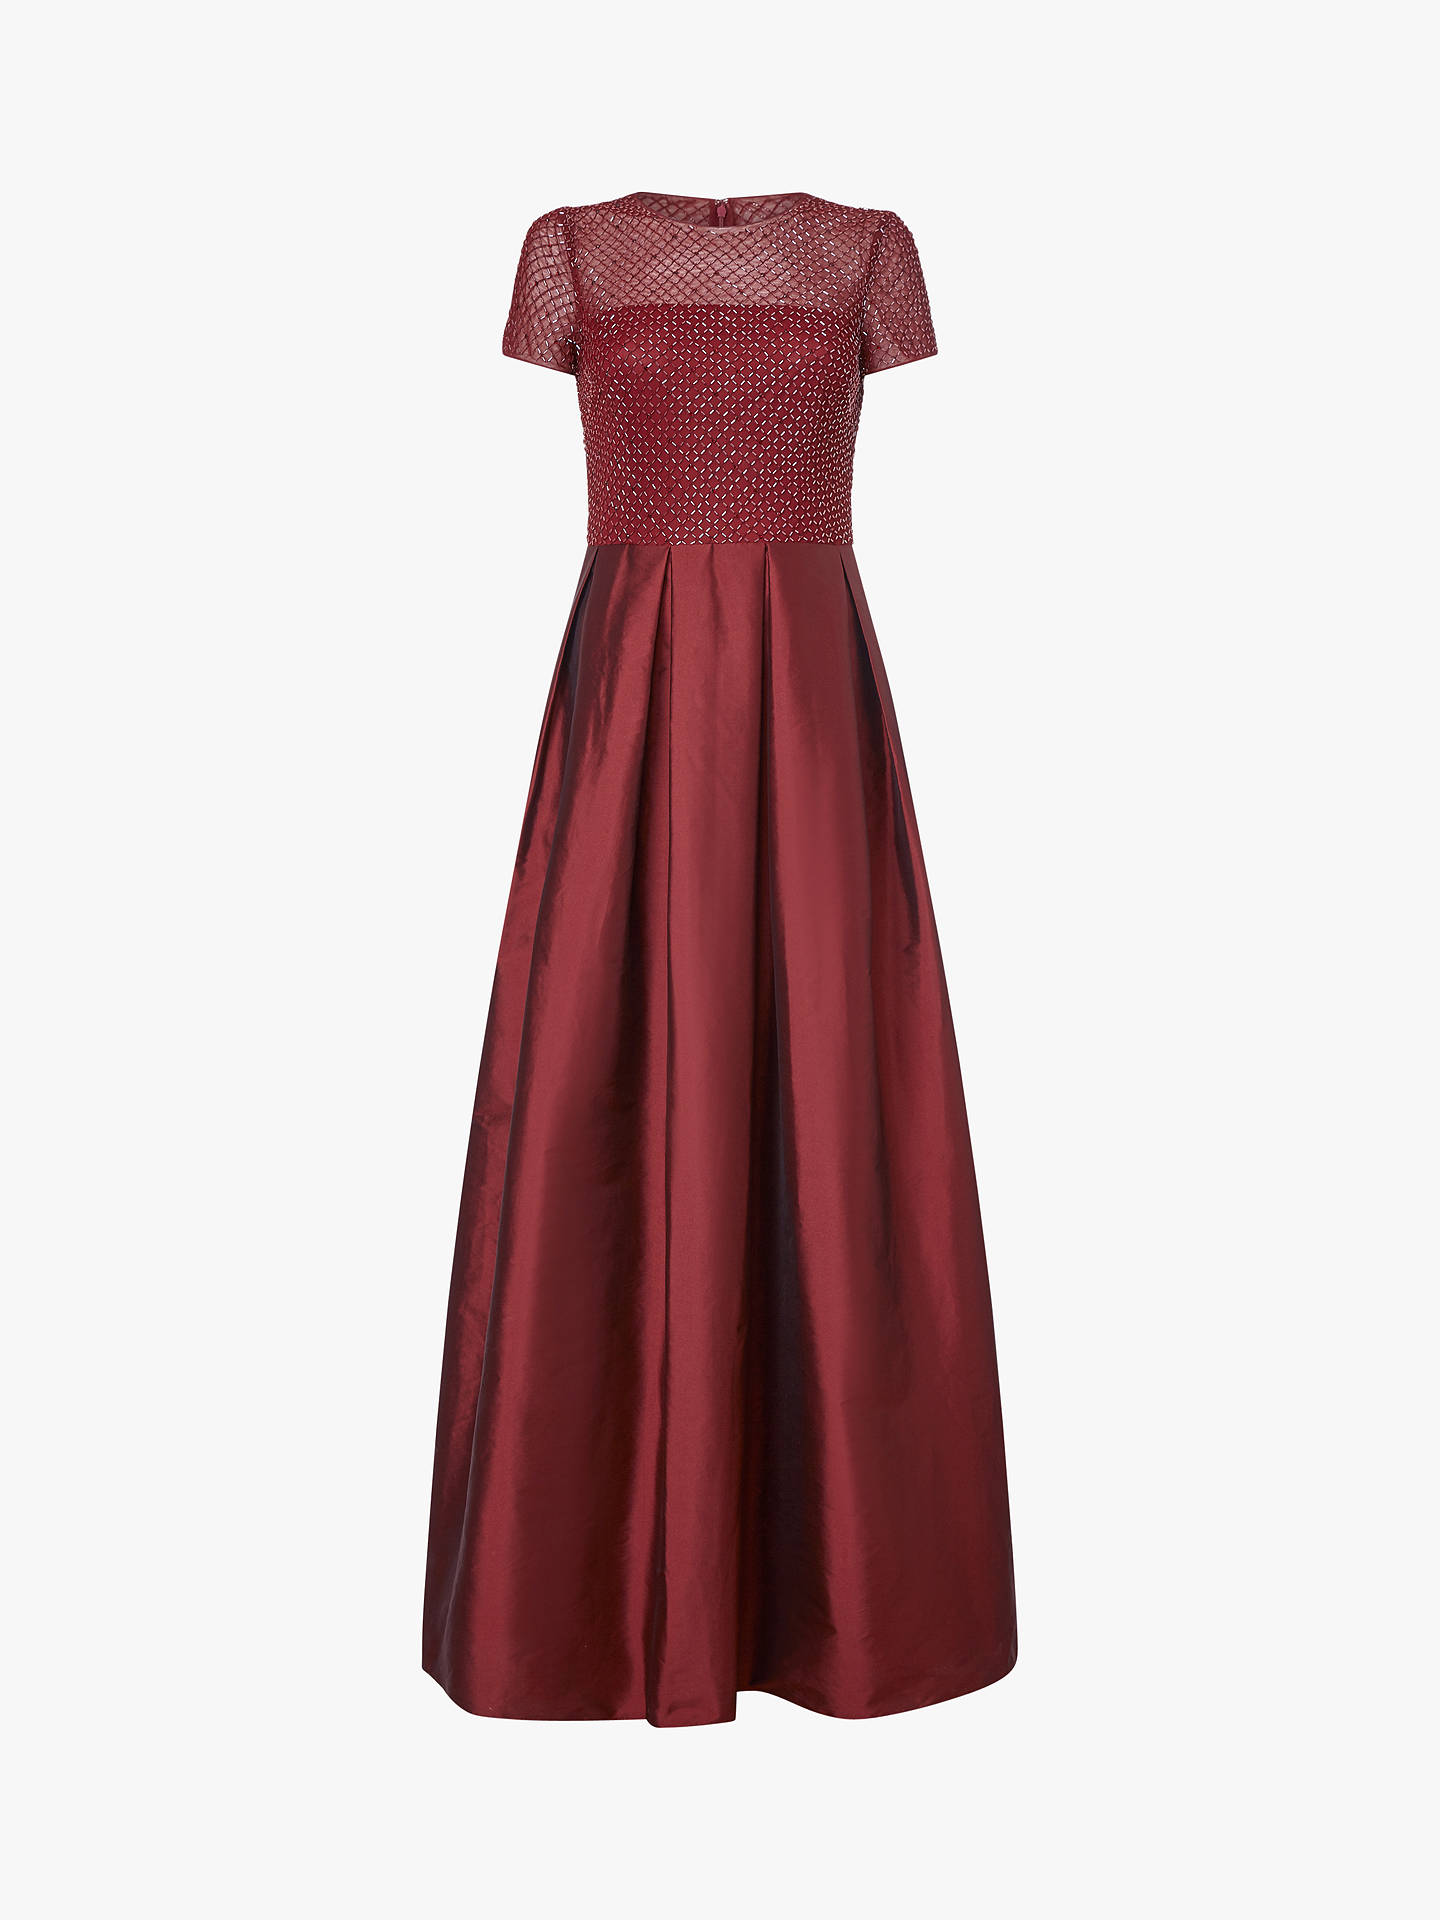 BuyAdrianna Papell Beaded Bodice Long Dress, Burgundy, 8 Online at johnlewis.com